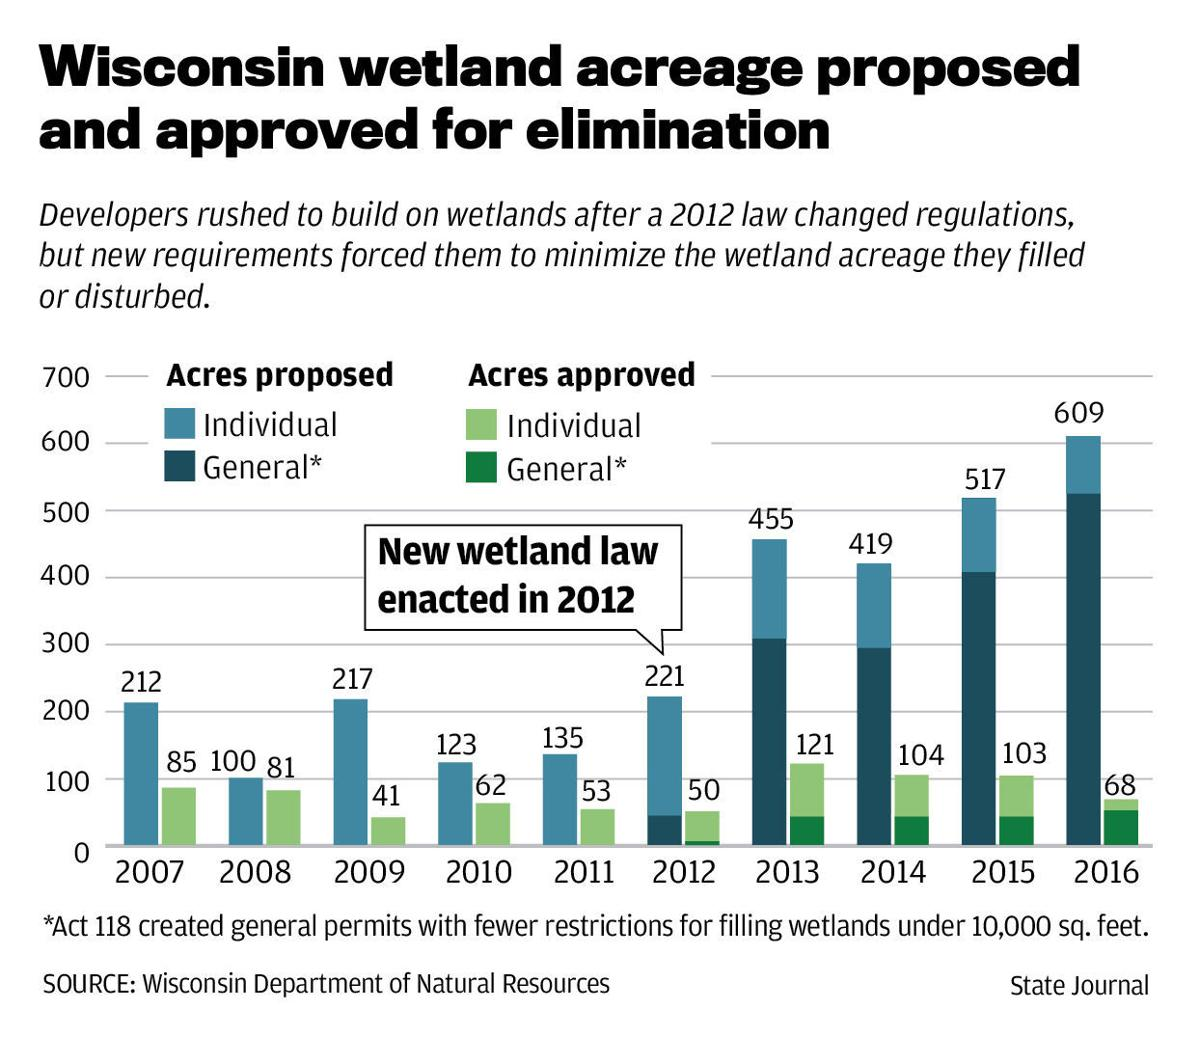 Permits to fill Wisconsin wetland acreage